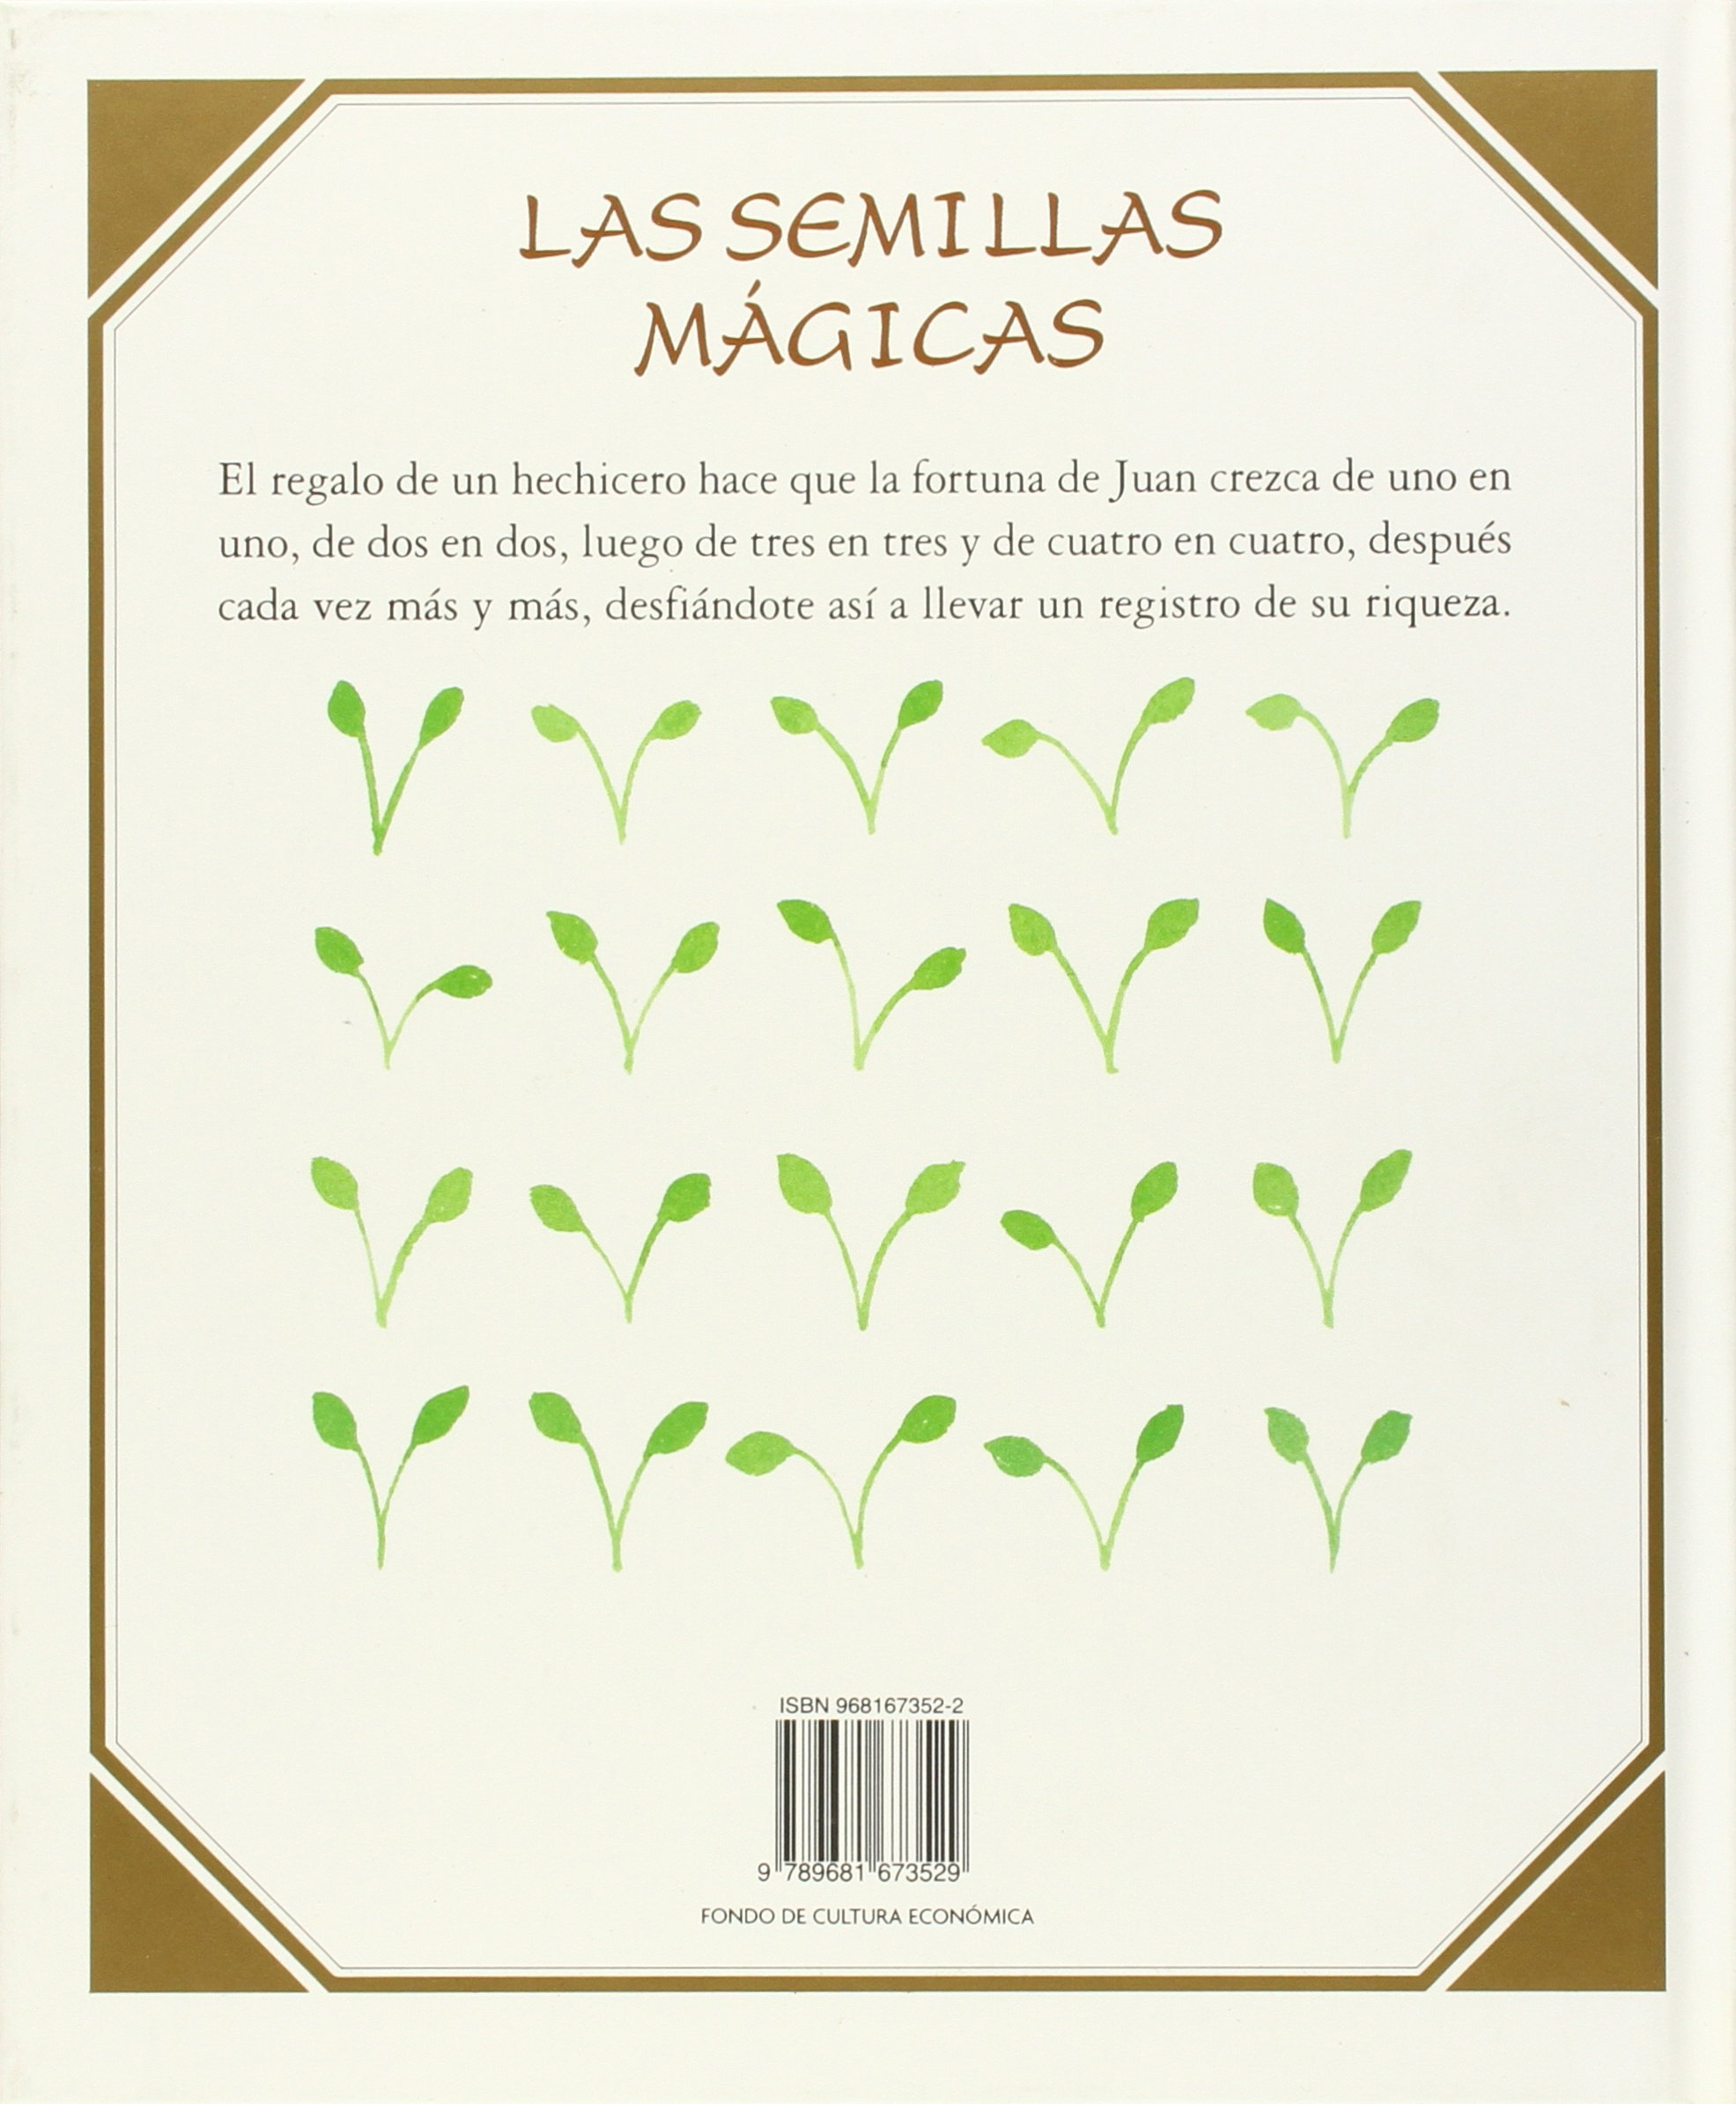 Las semillas mágicas (Los Especiales De Ciencia) (Spanish Edition)